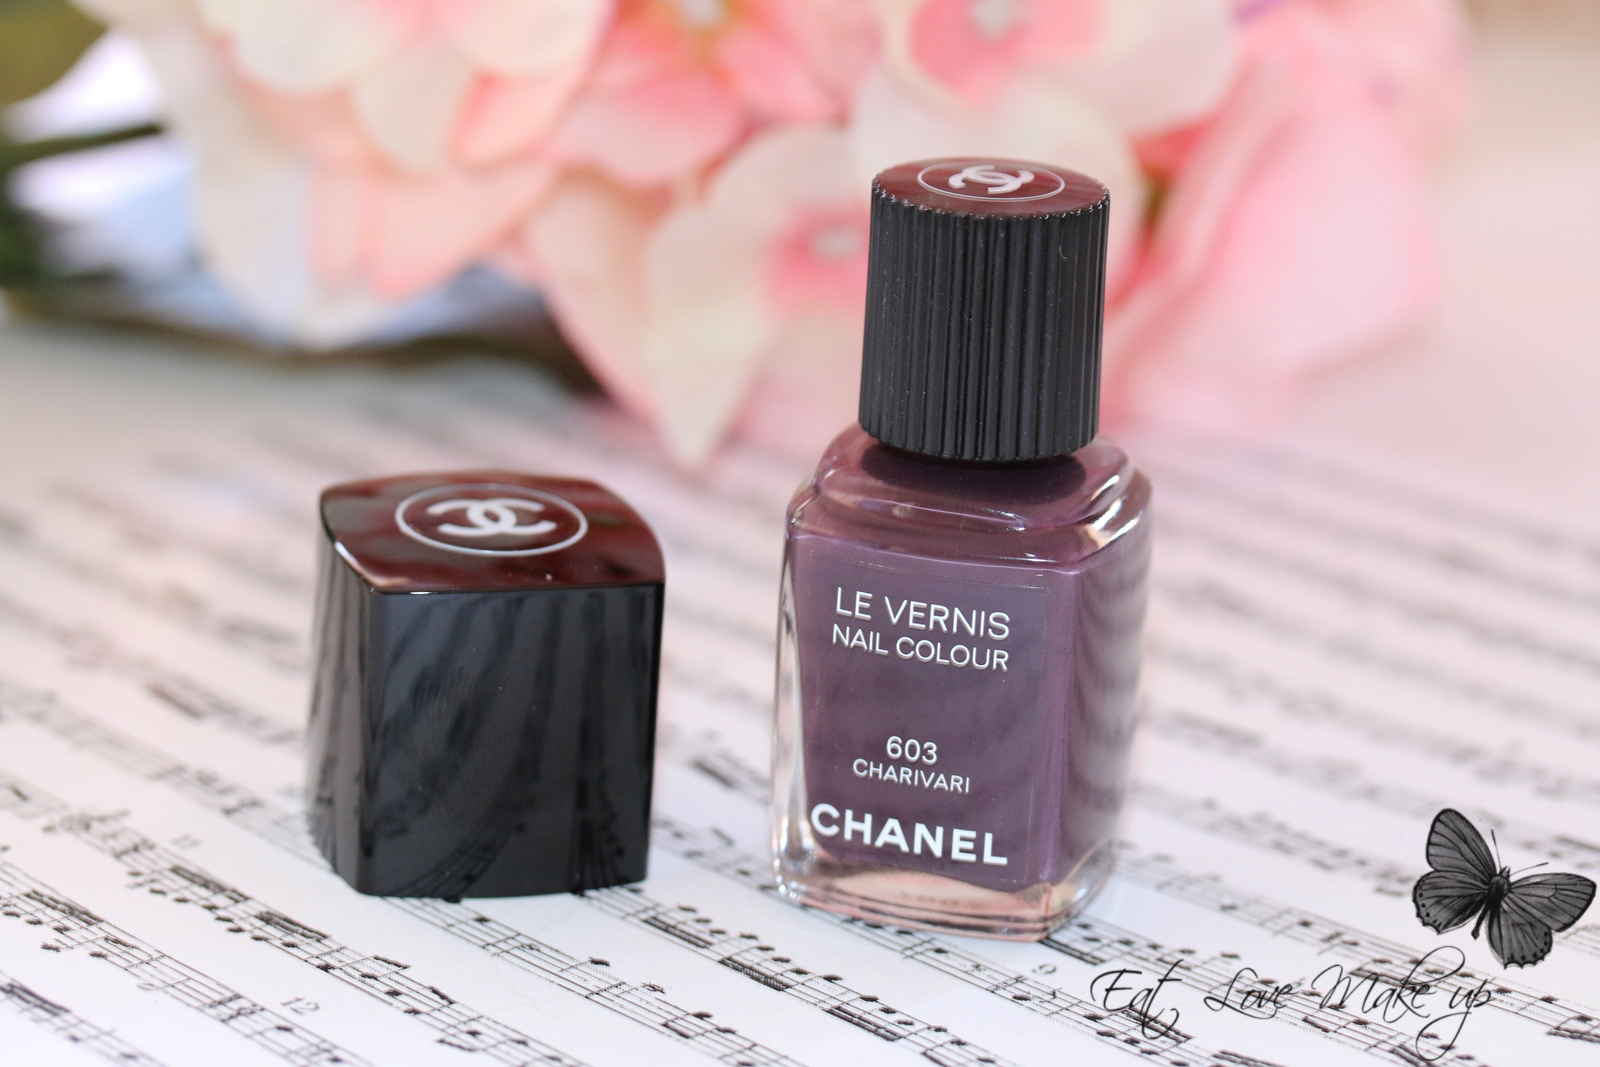 Chanel Le Vernis Nail Colour 603 Charivari